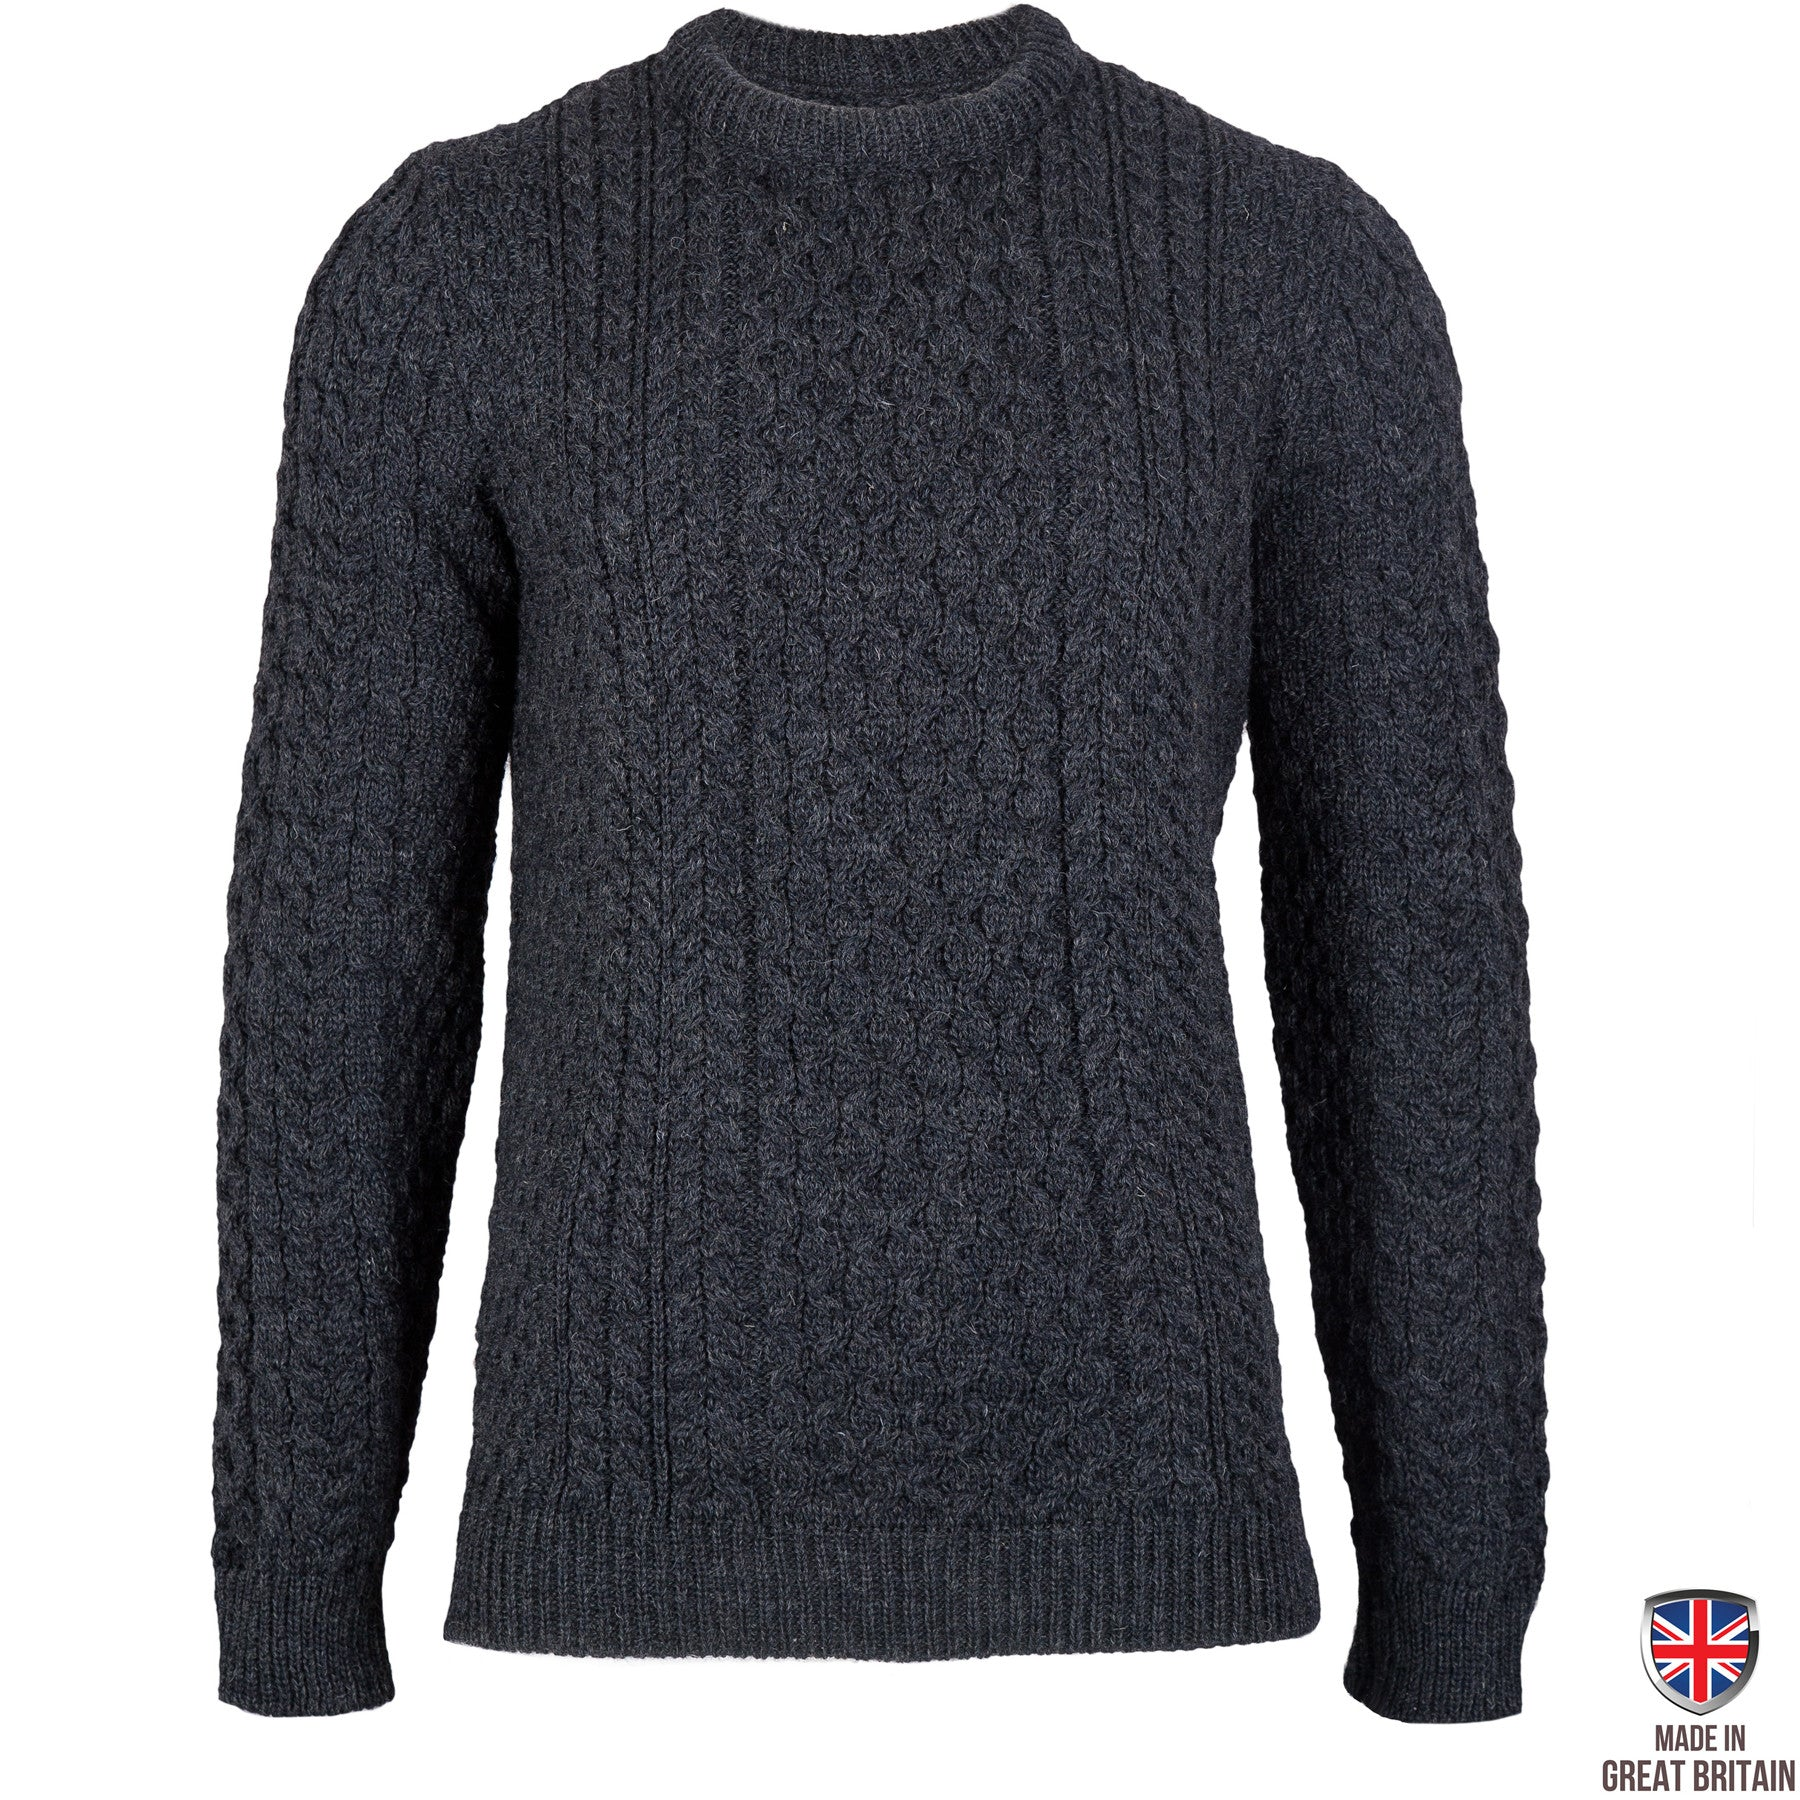 Johnson - Charcoal British Wool Men